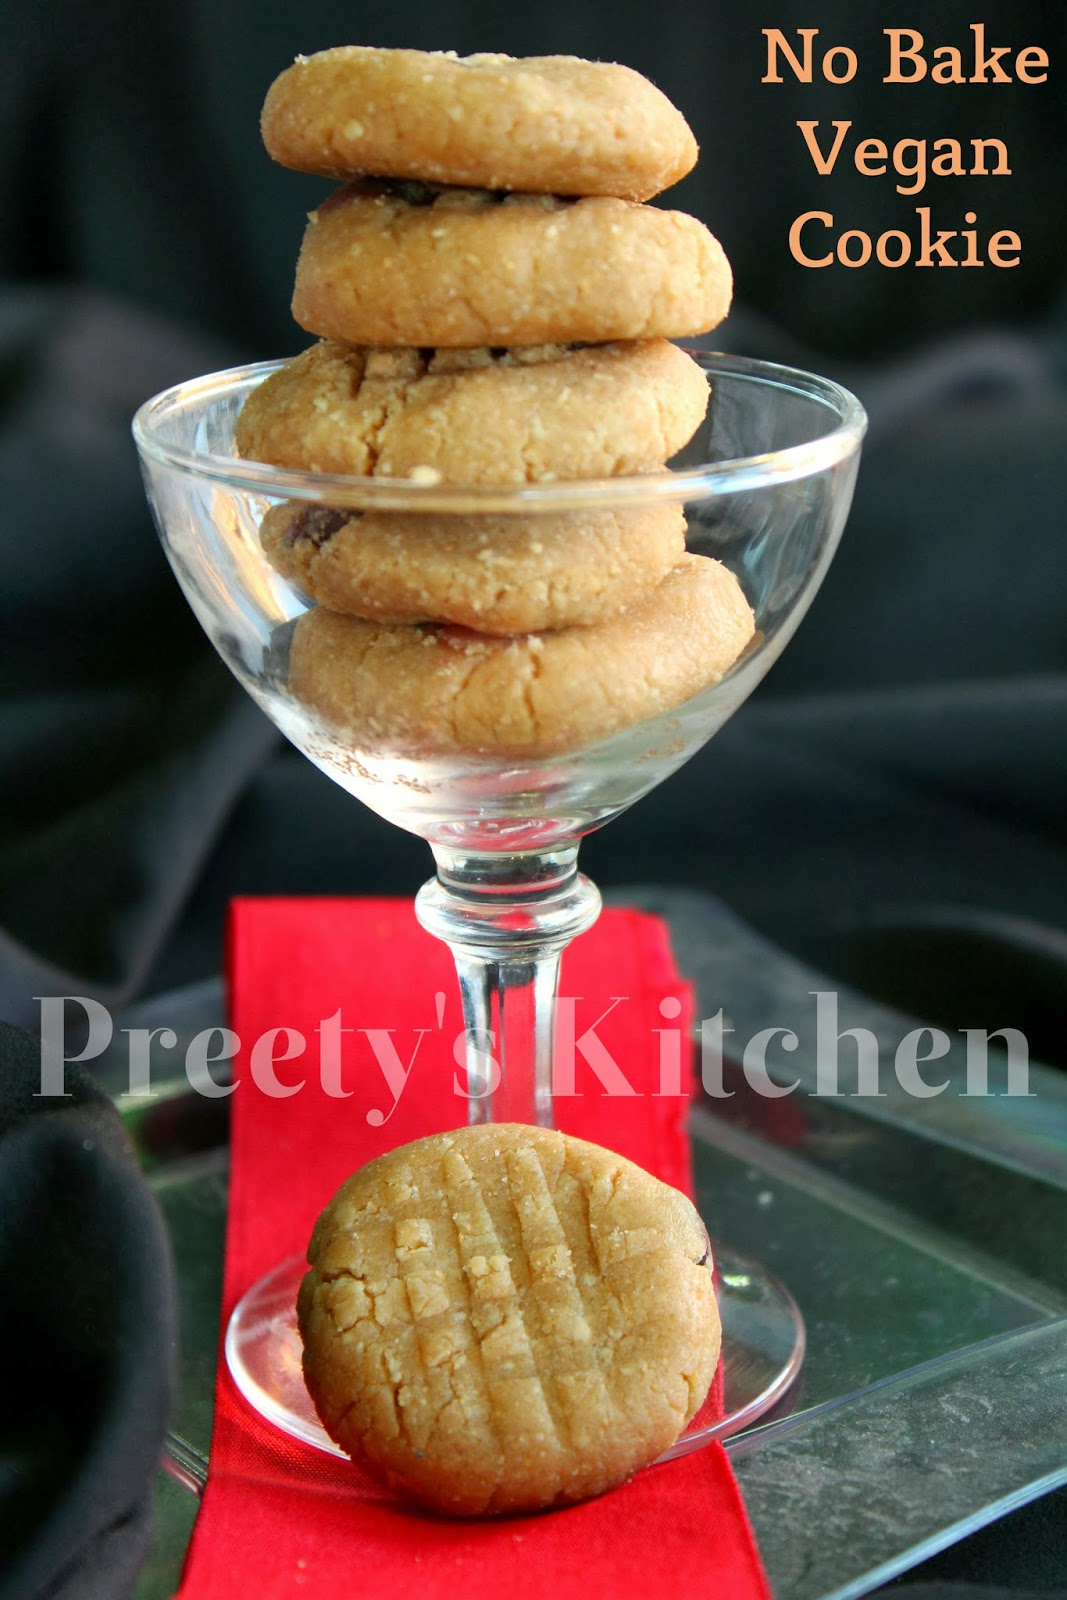 Preety's Kitchen: No Bake Vegan Cookie Recipe ( Stpe By Step Pictures)